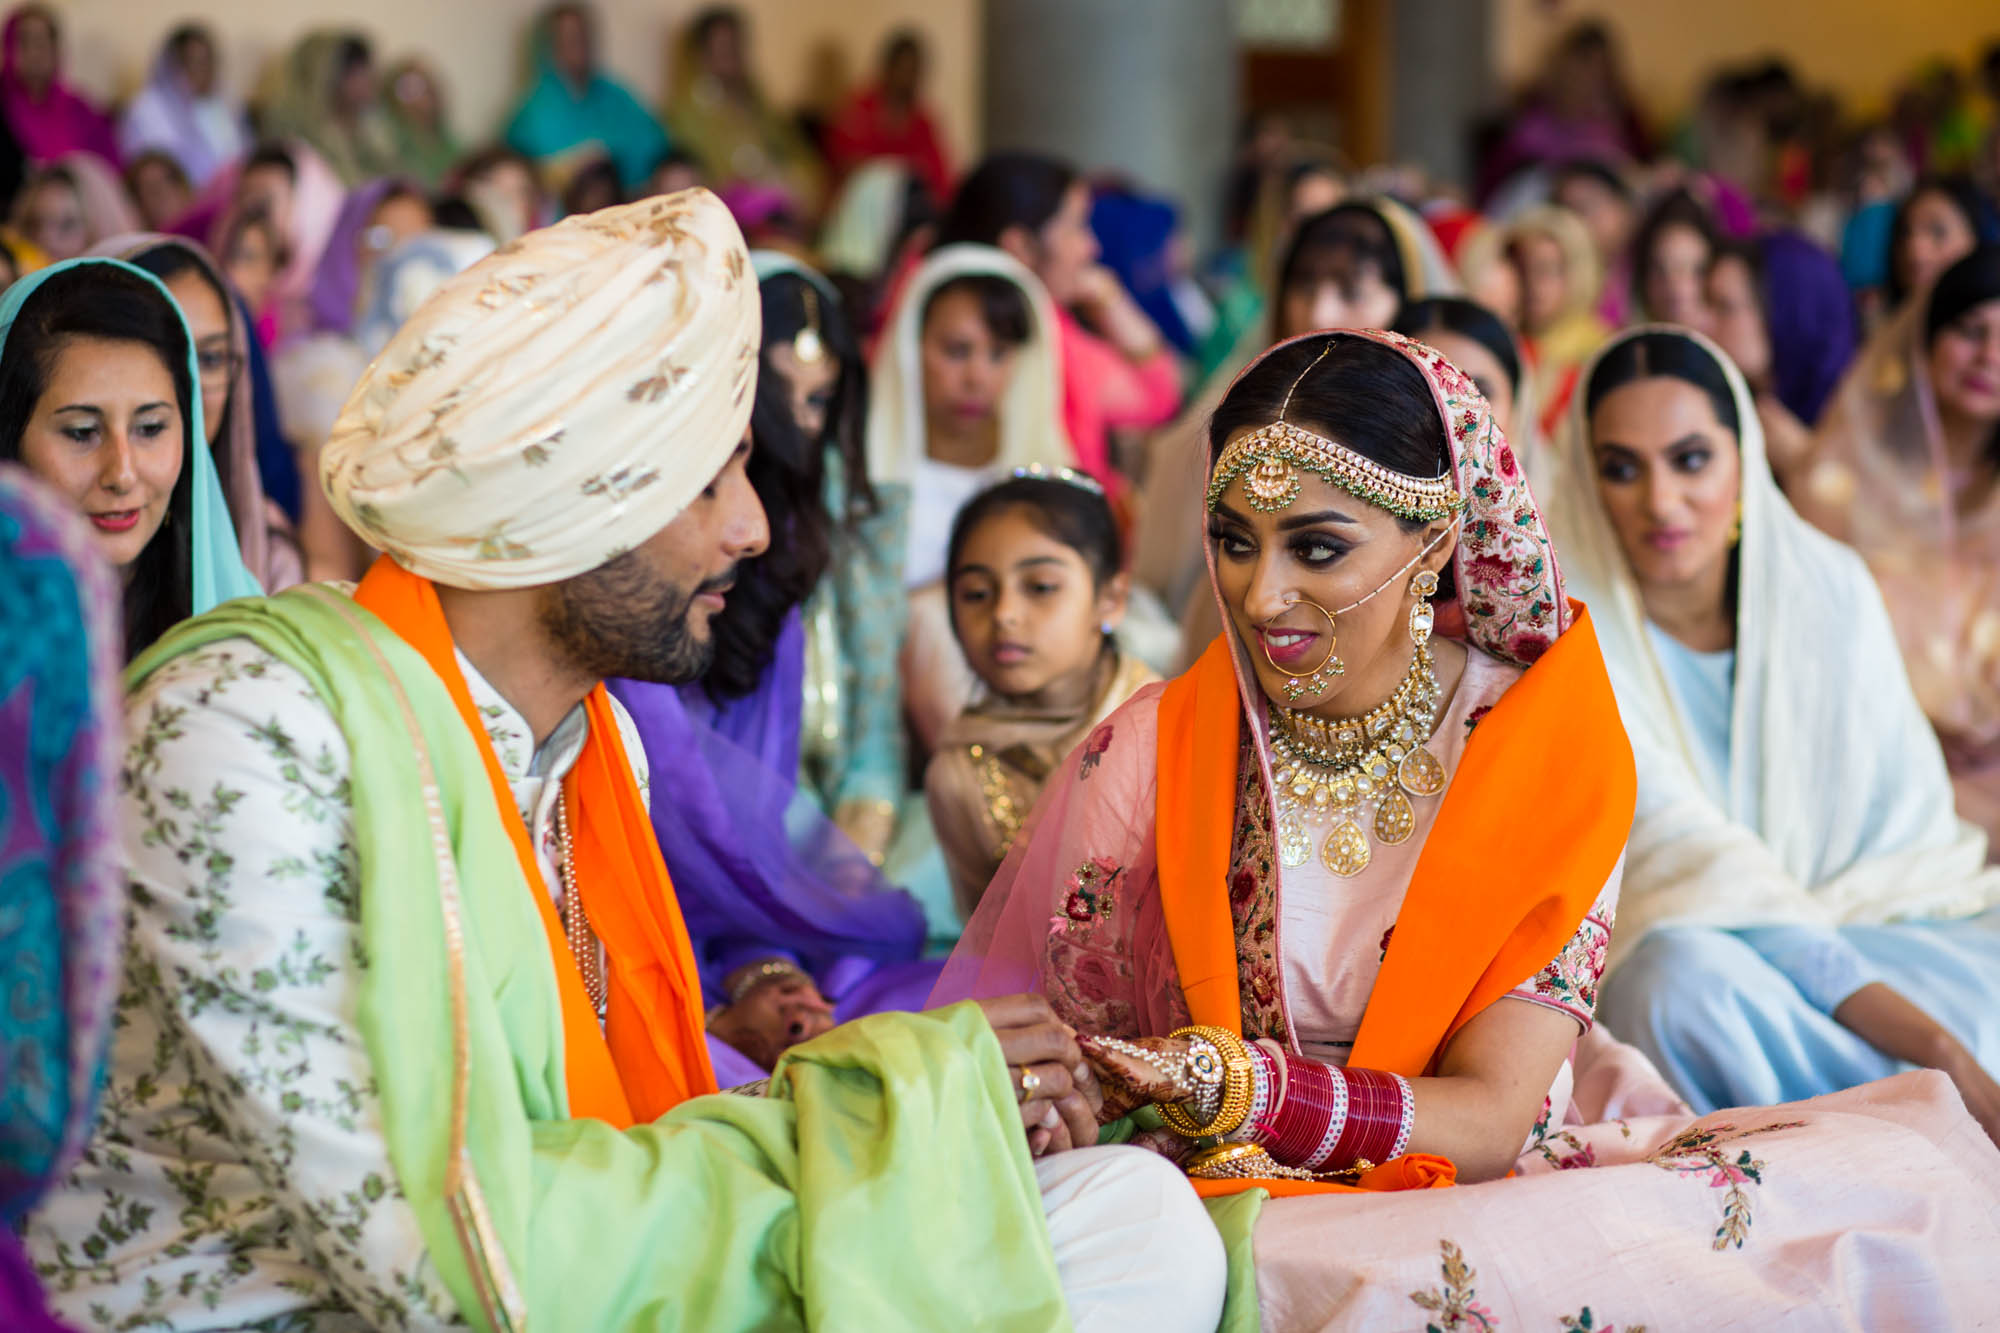 Sikh wedding photographer London, Gurdwara Sri Guru Singh Sabha